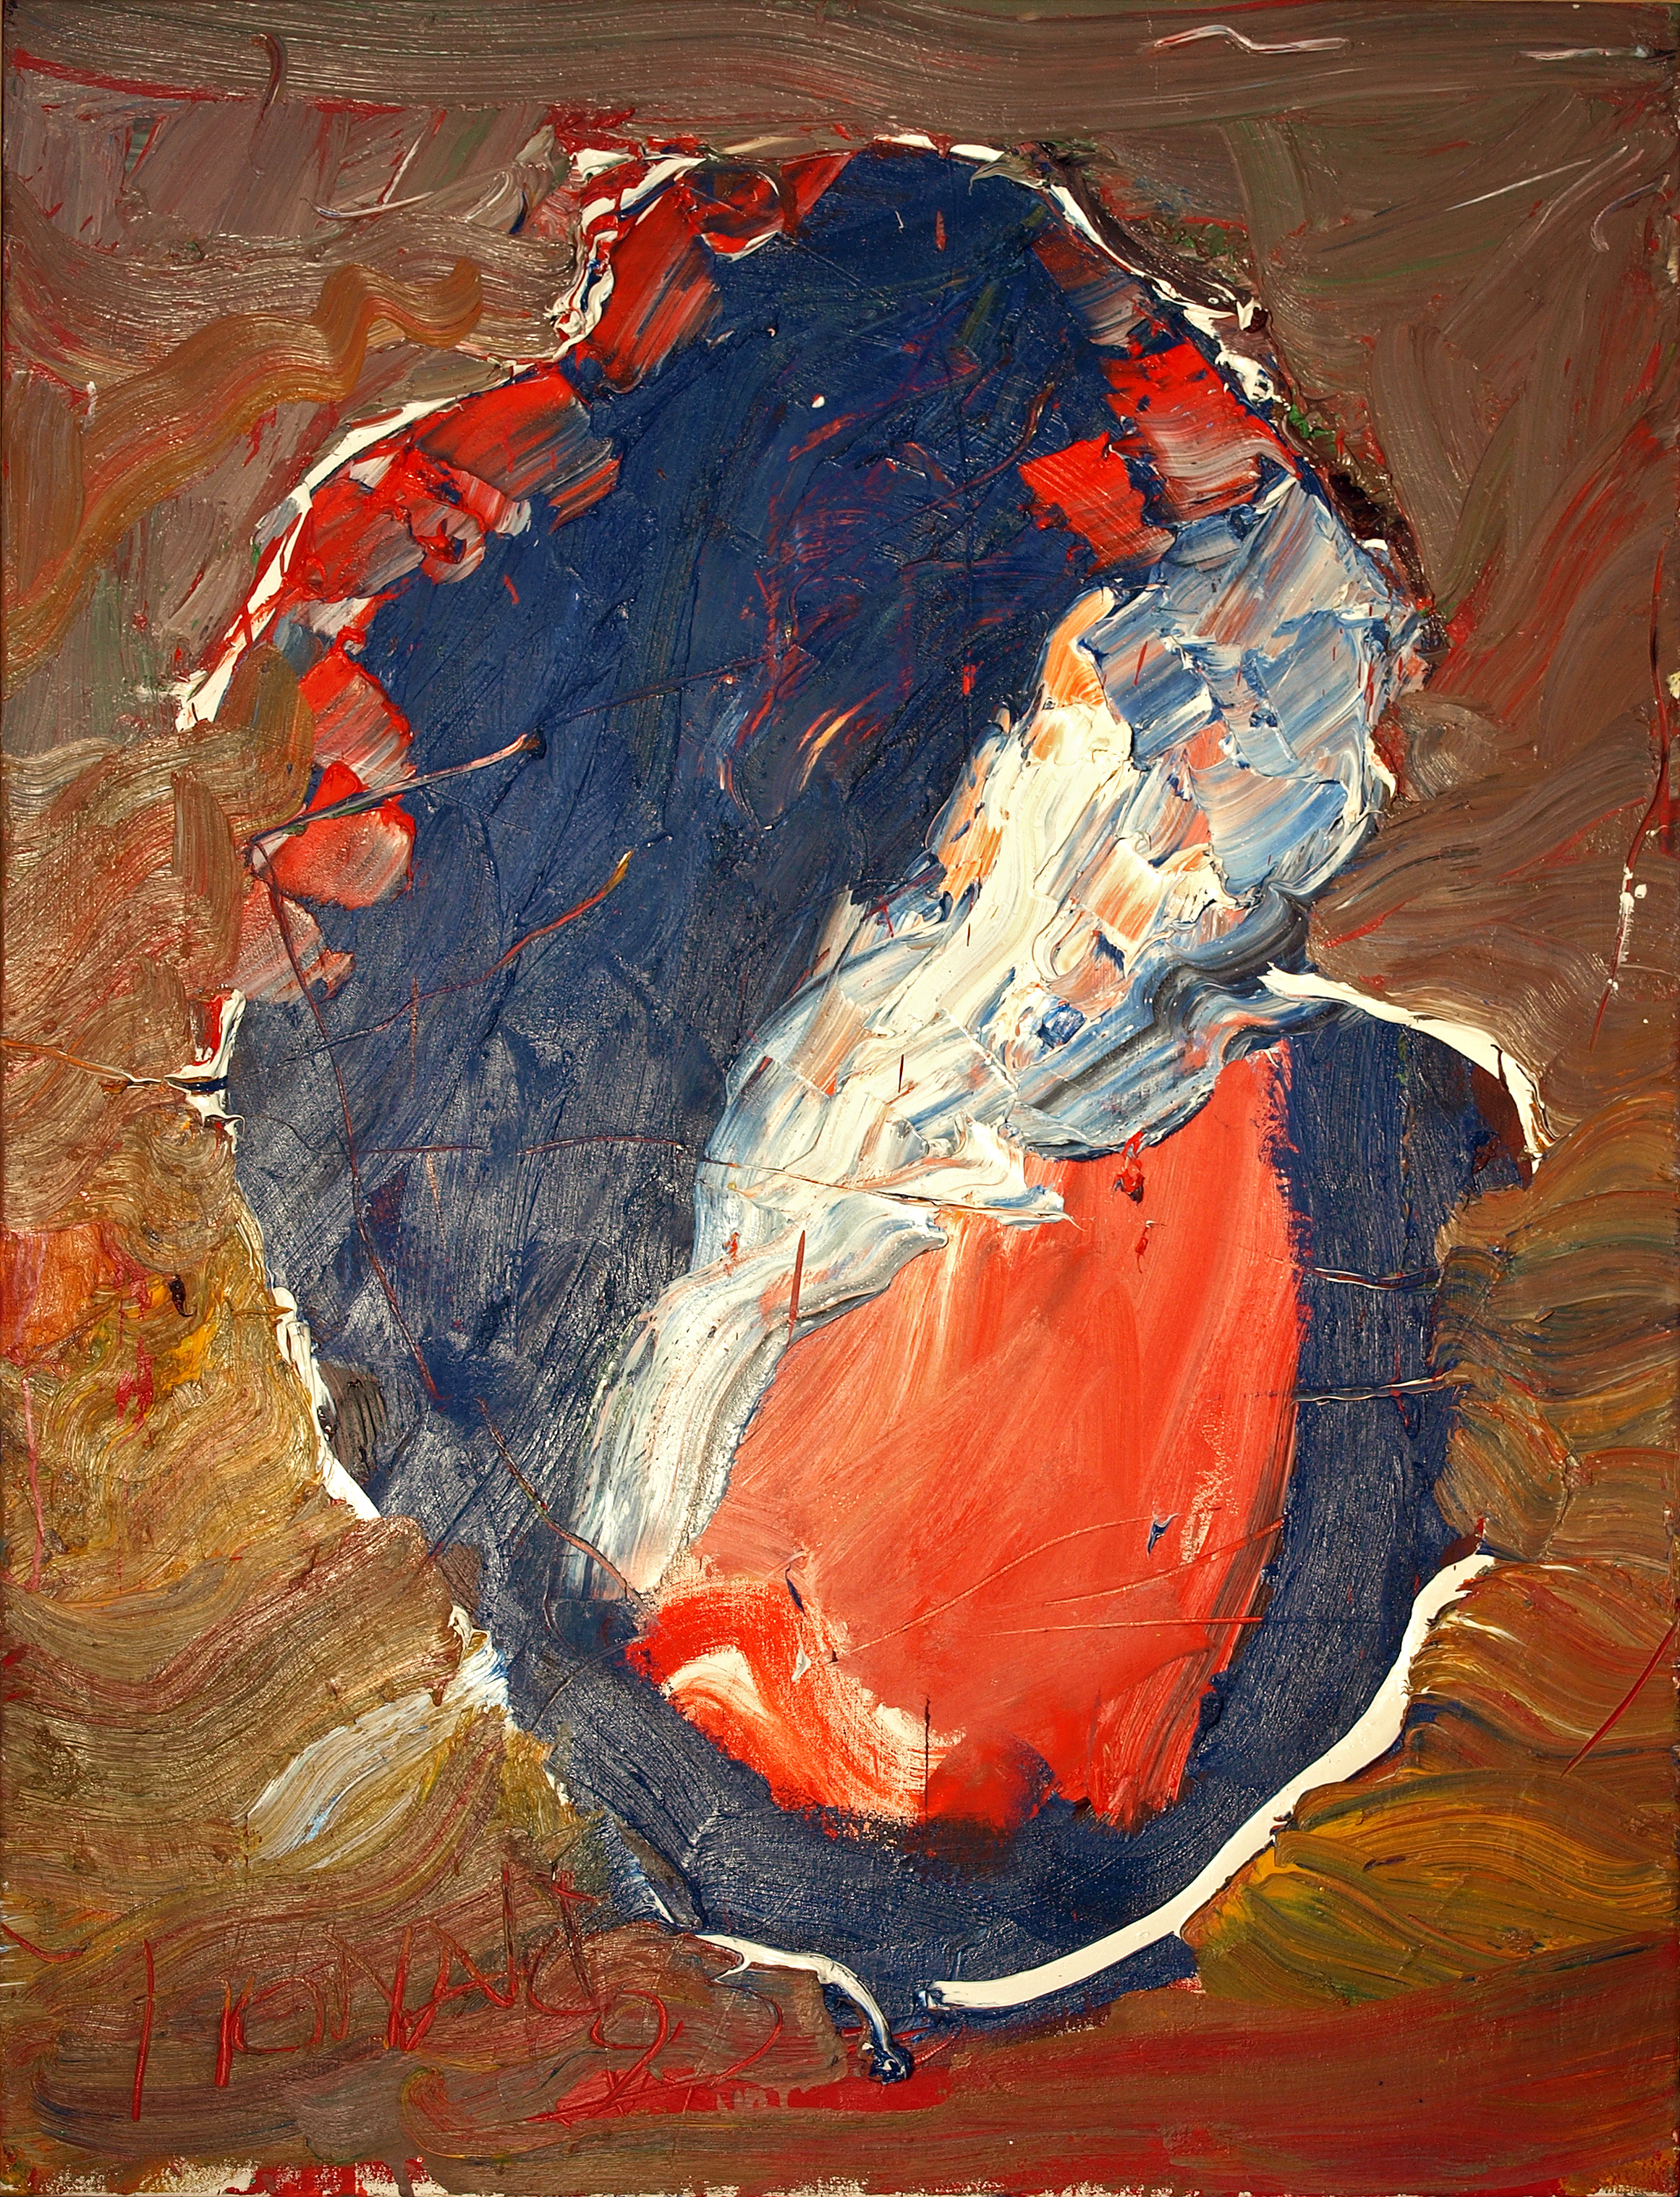 Fra Angelic, 1993, 48 x 36 inches, Acrylic on canvas